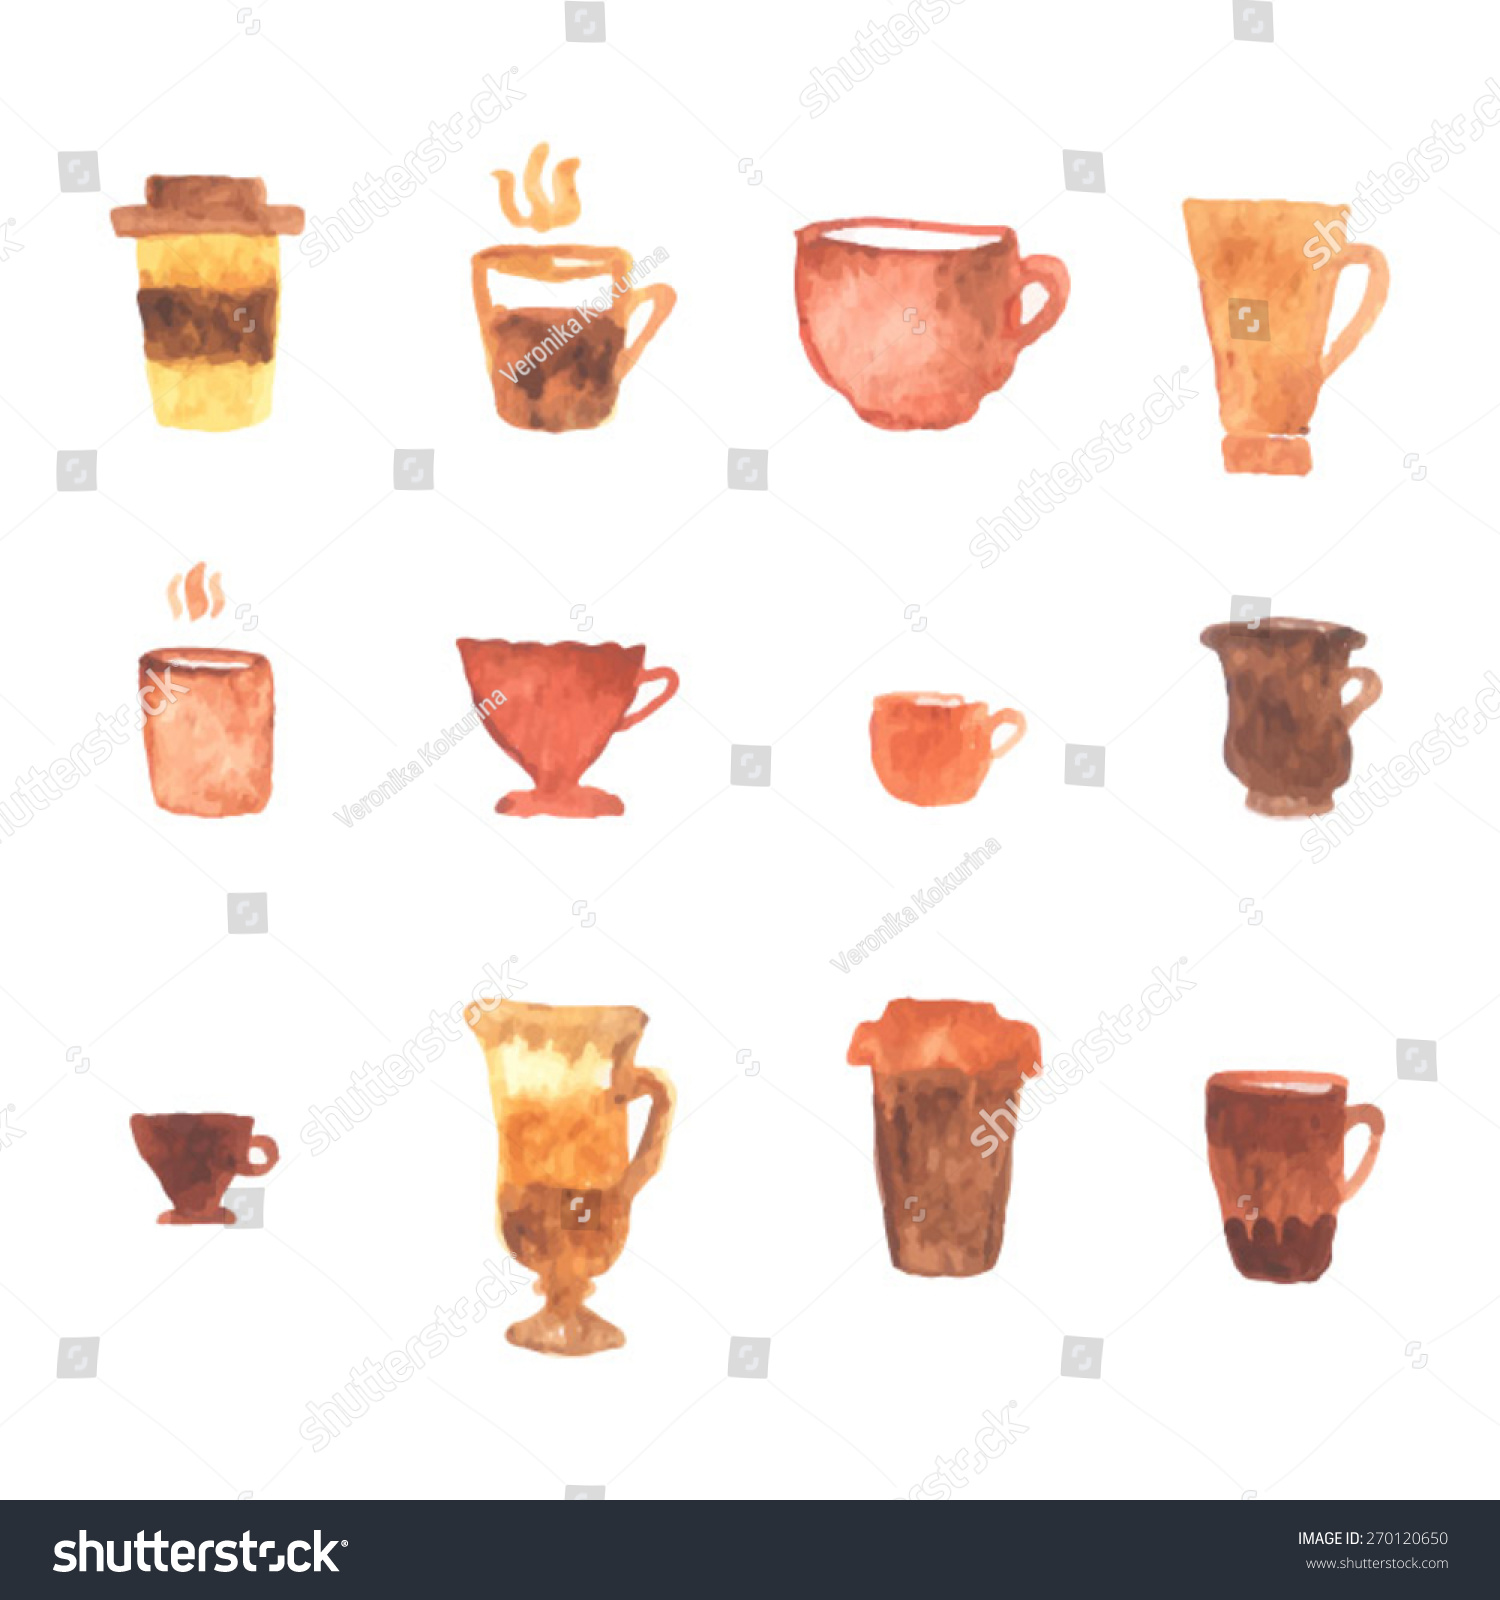 Coffee cup set watercolor cup illustration stock vector for Coffee watercolor